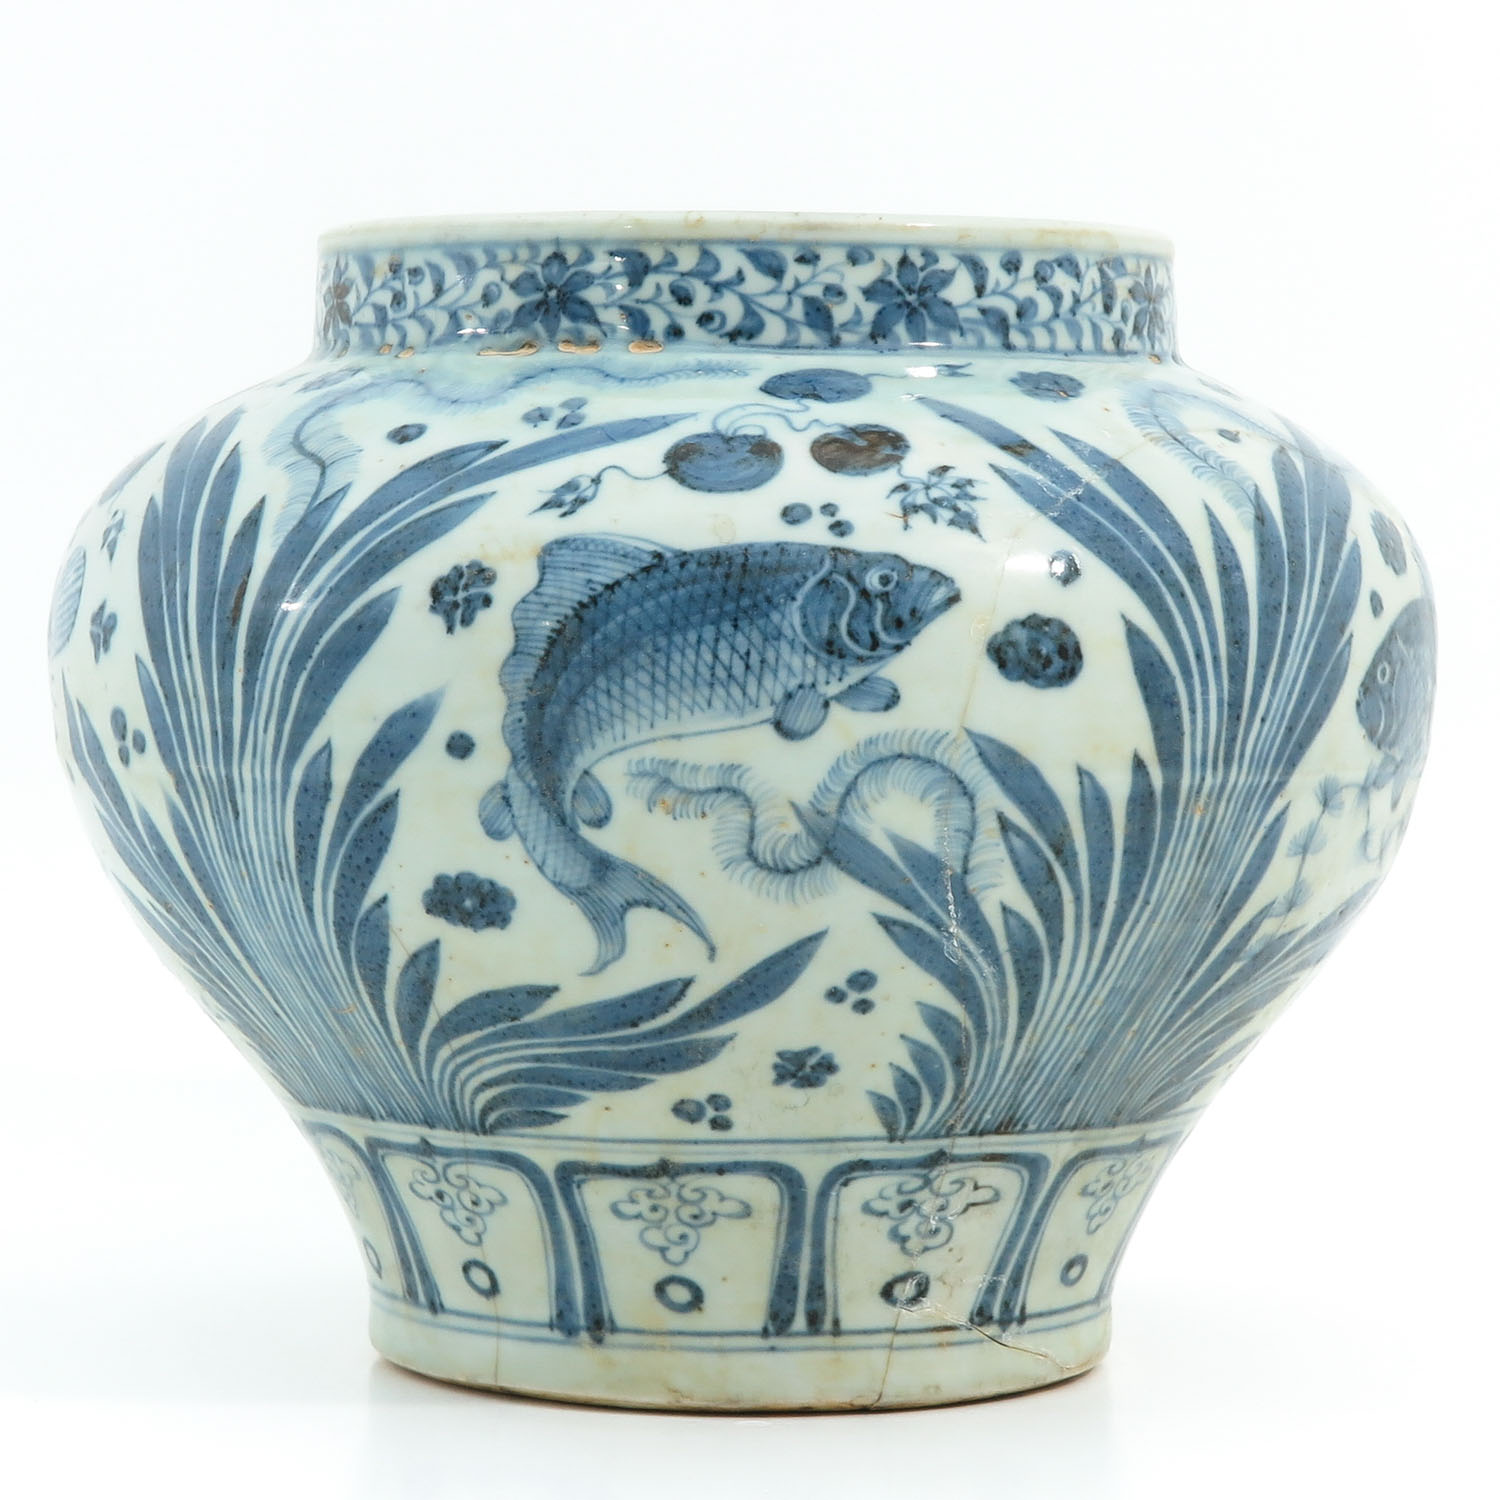 A Blue and White Jar - Image 2 of 9